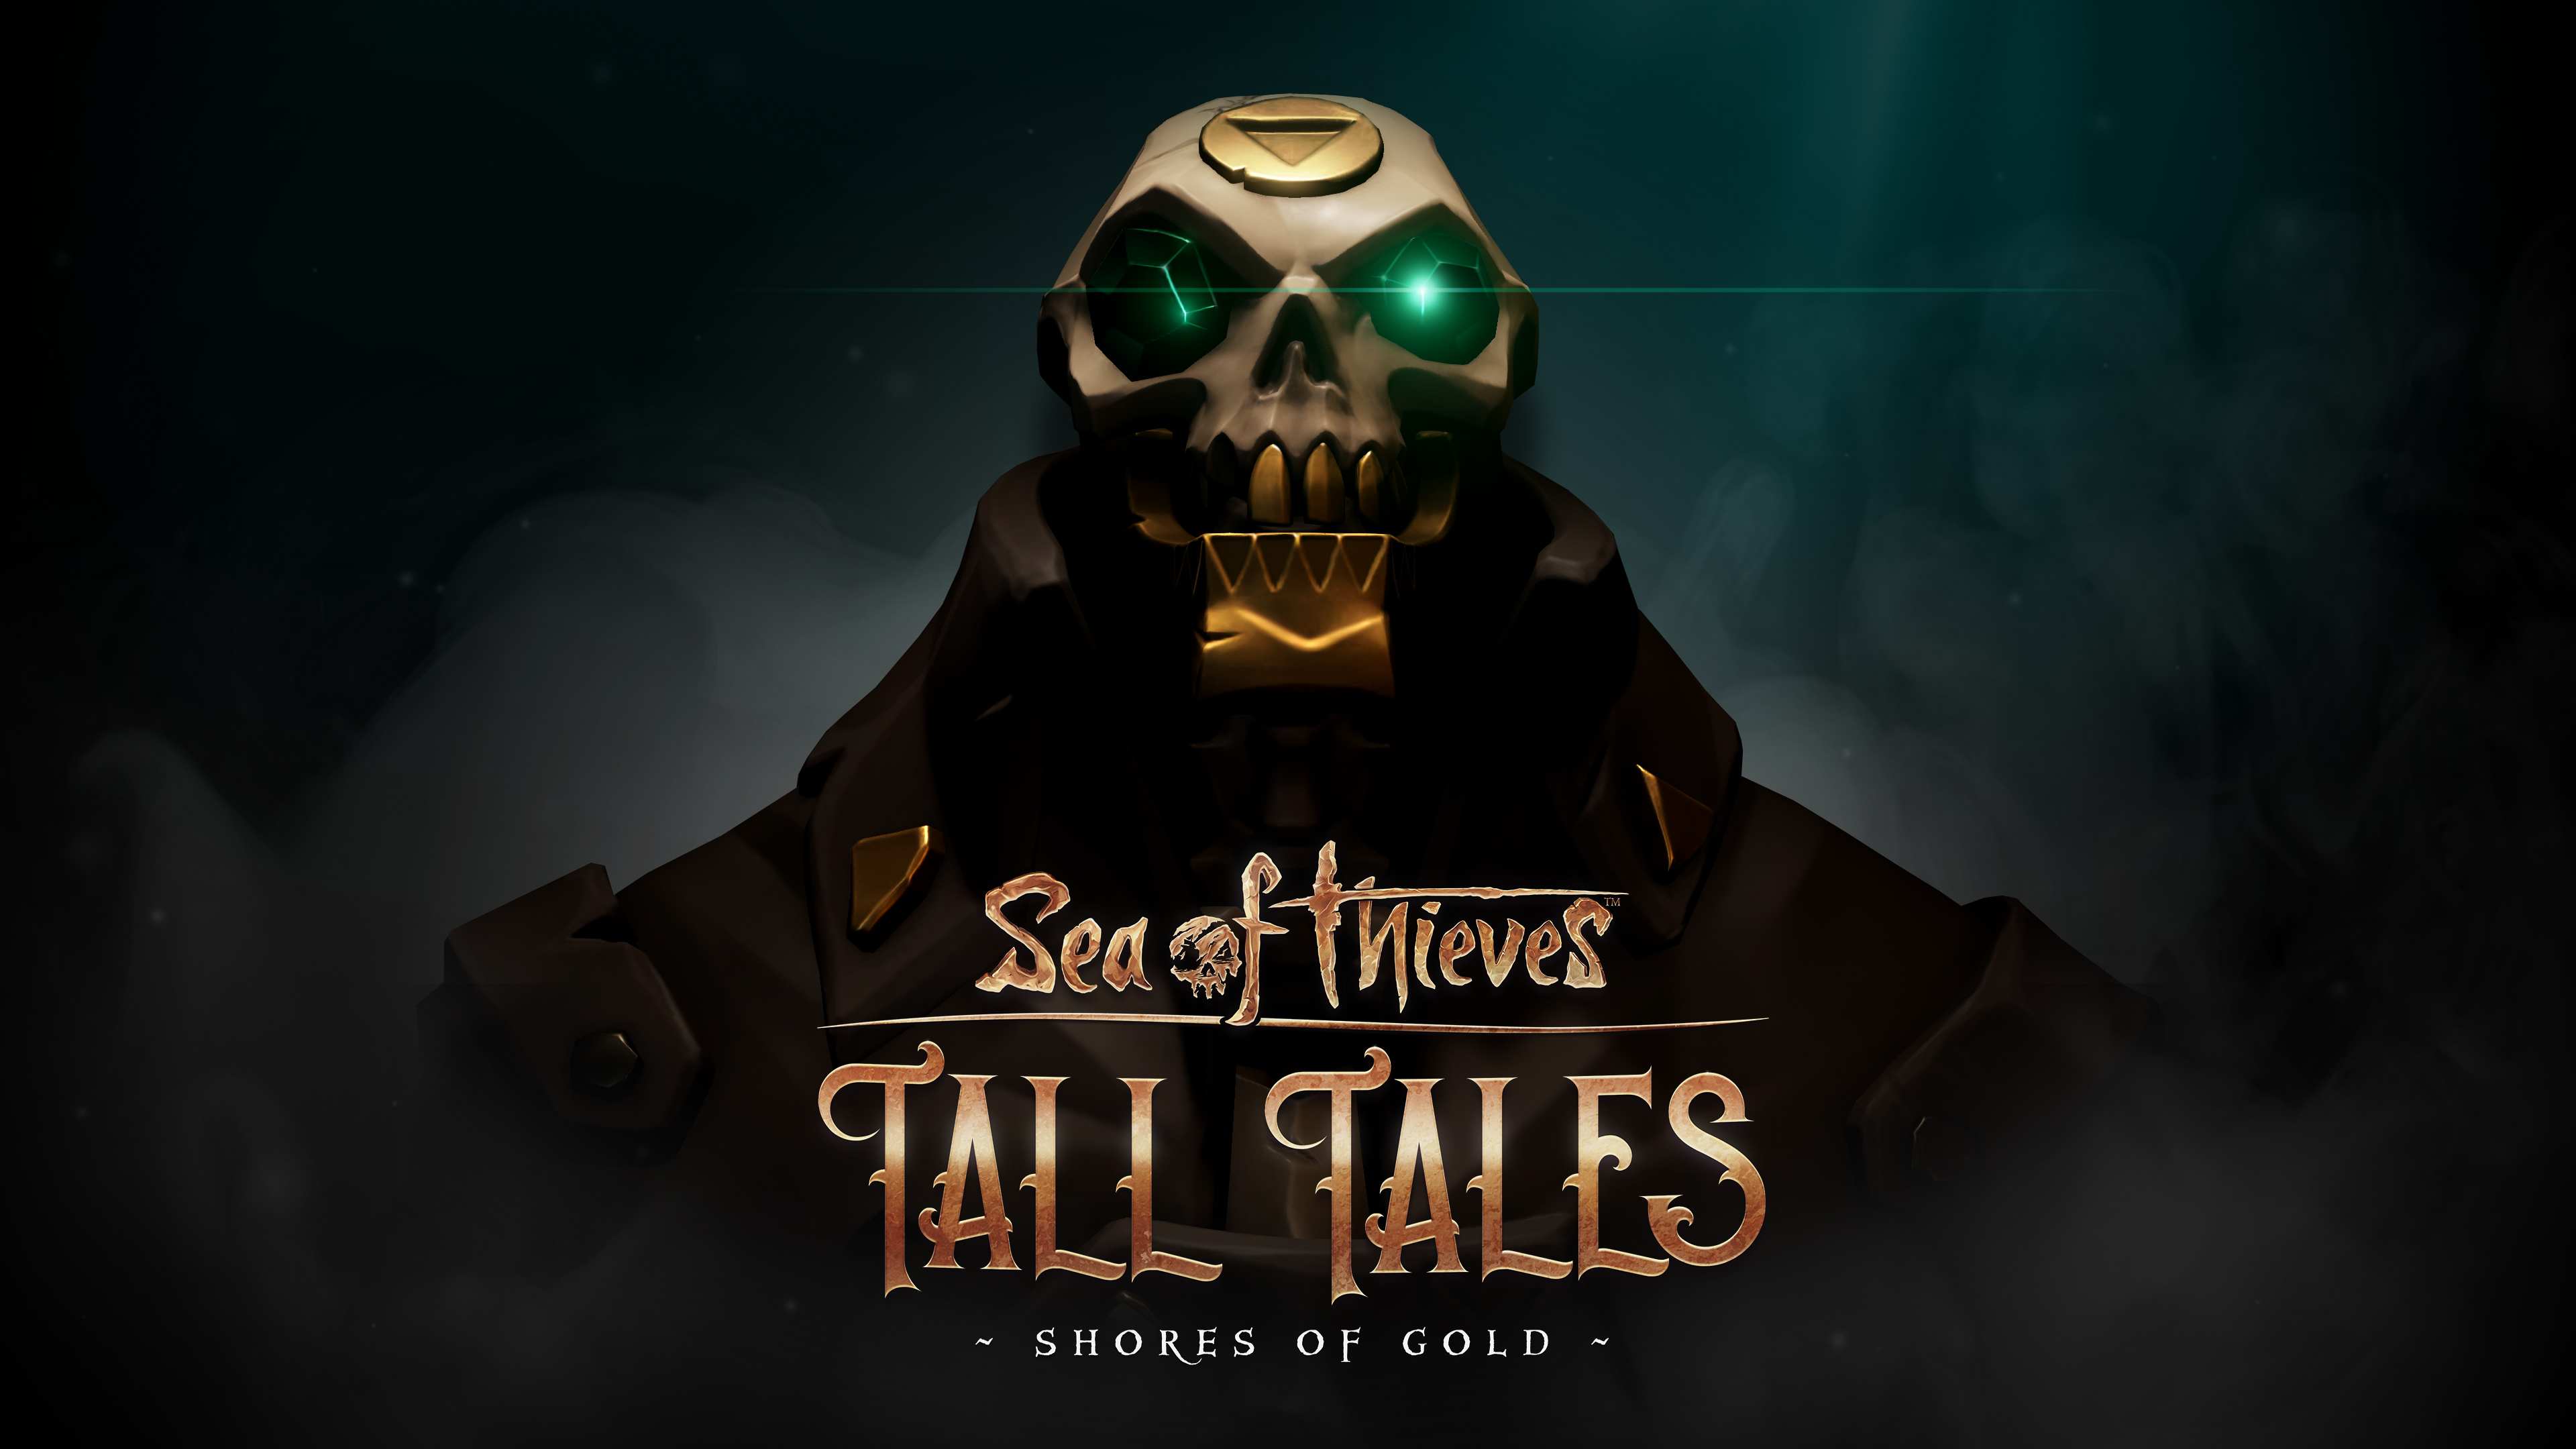 Wallpaper 4k Sea Of Thieves Tall Tales 4k 2019 Games Wallpapers